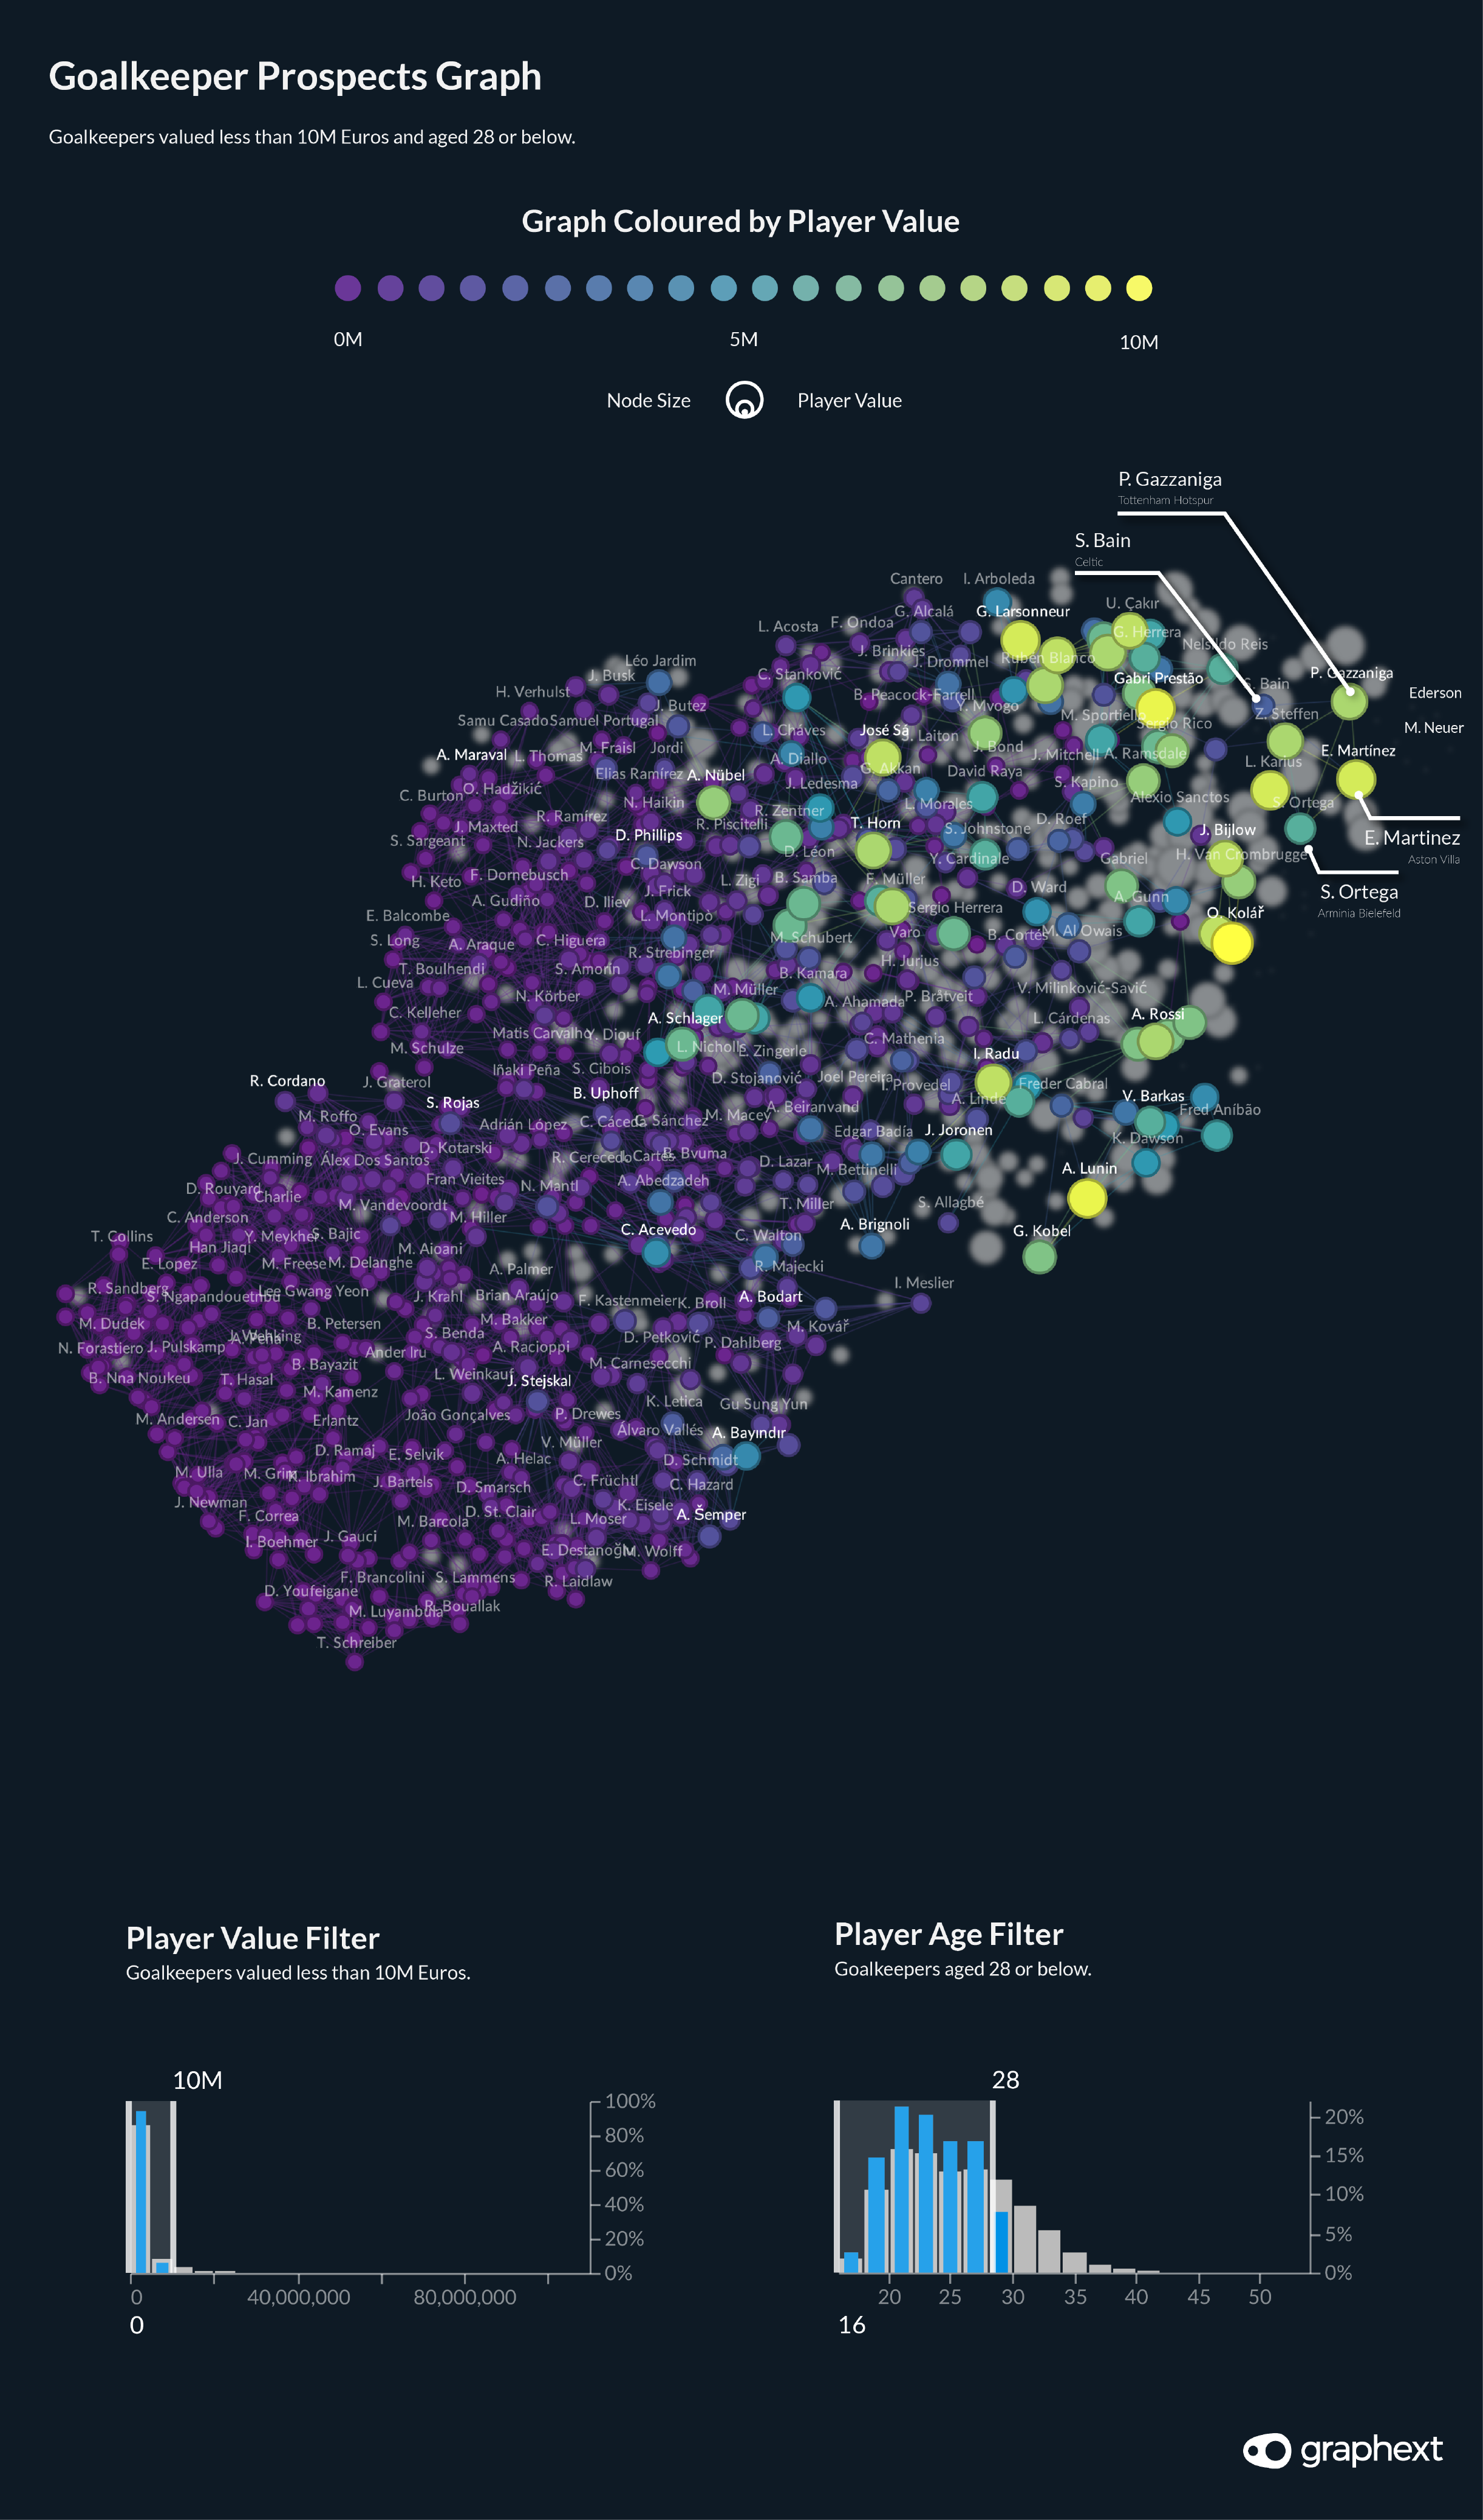 A network visualisation highlighting the best goalkeeping prospects in the FIFA dataset.